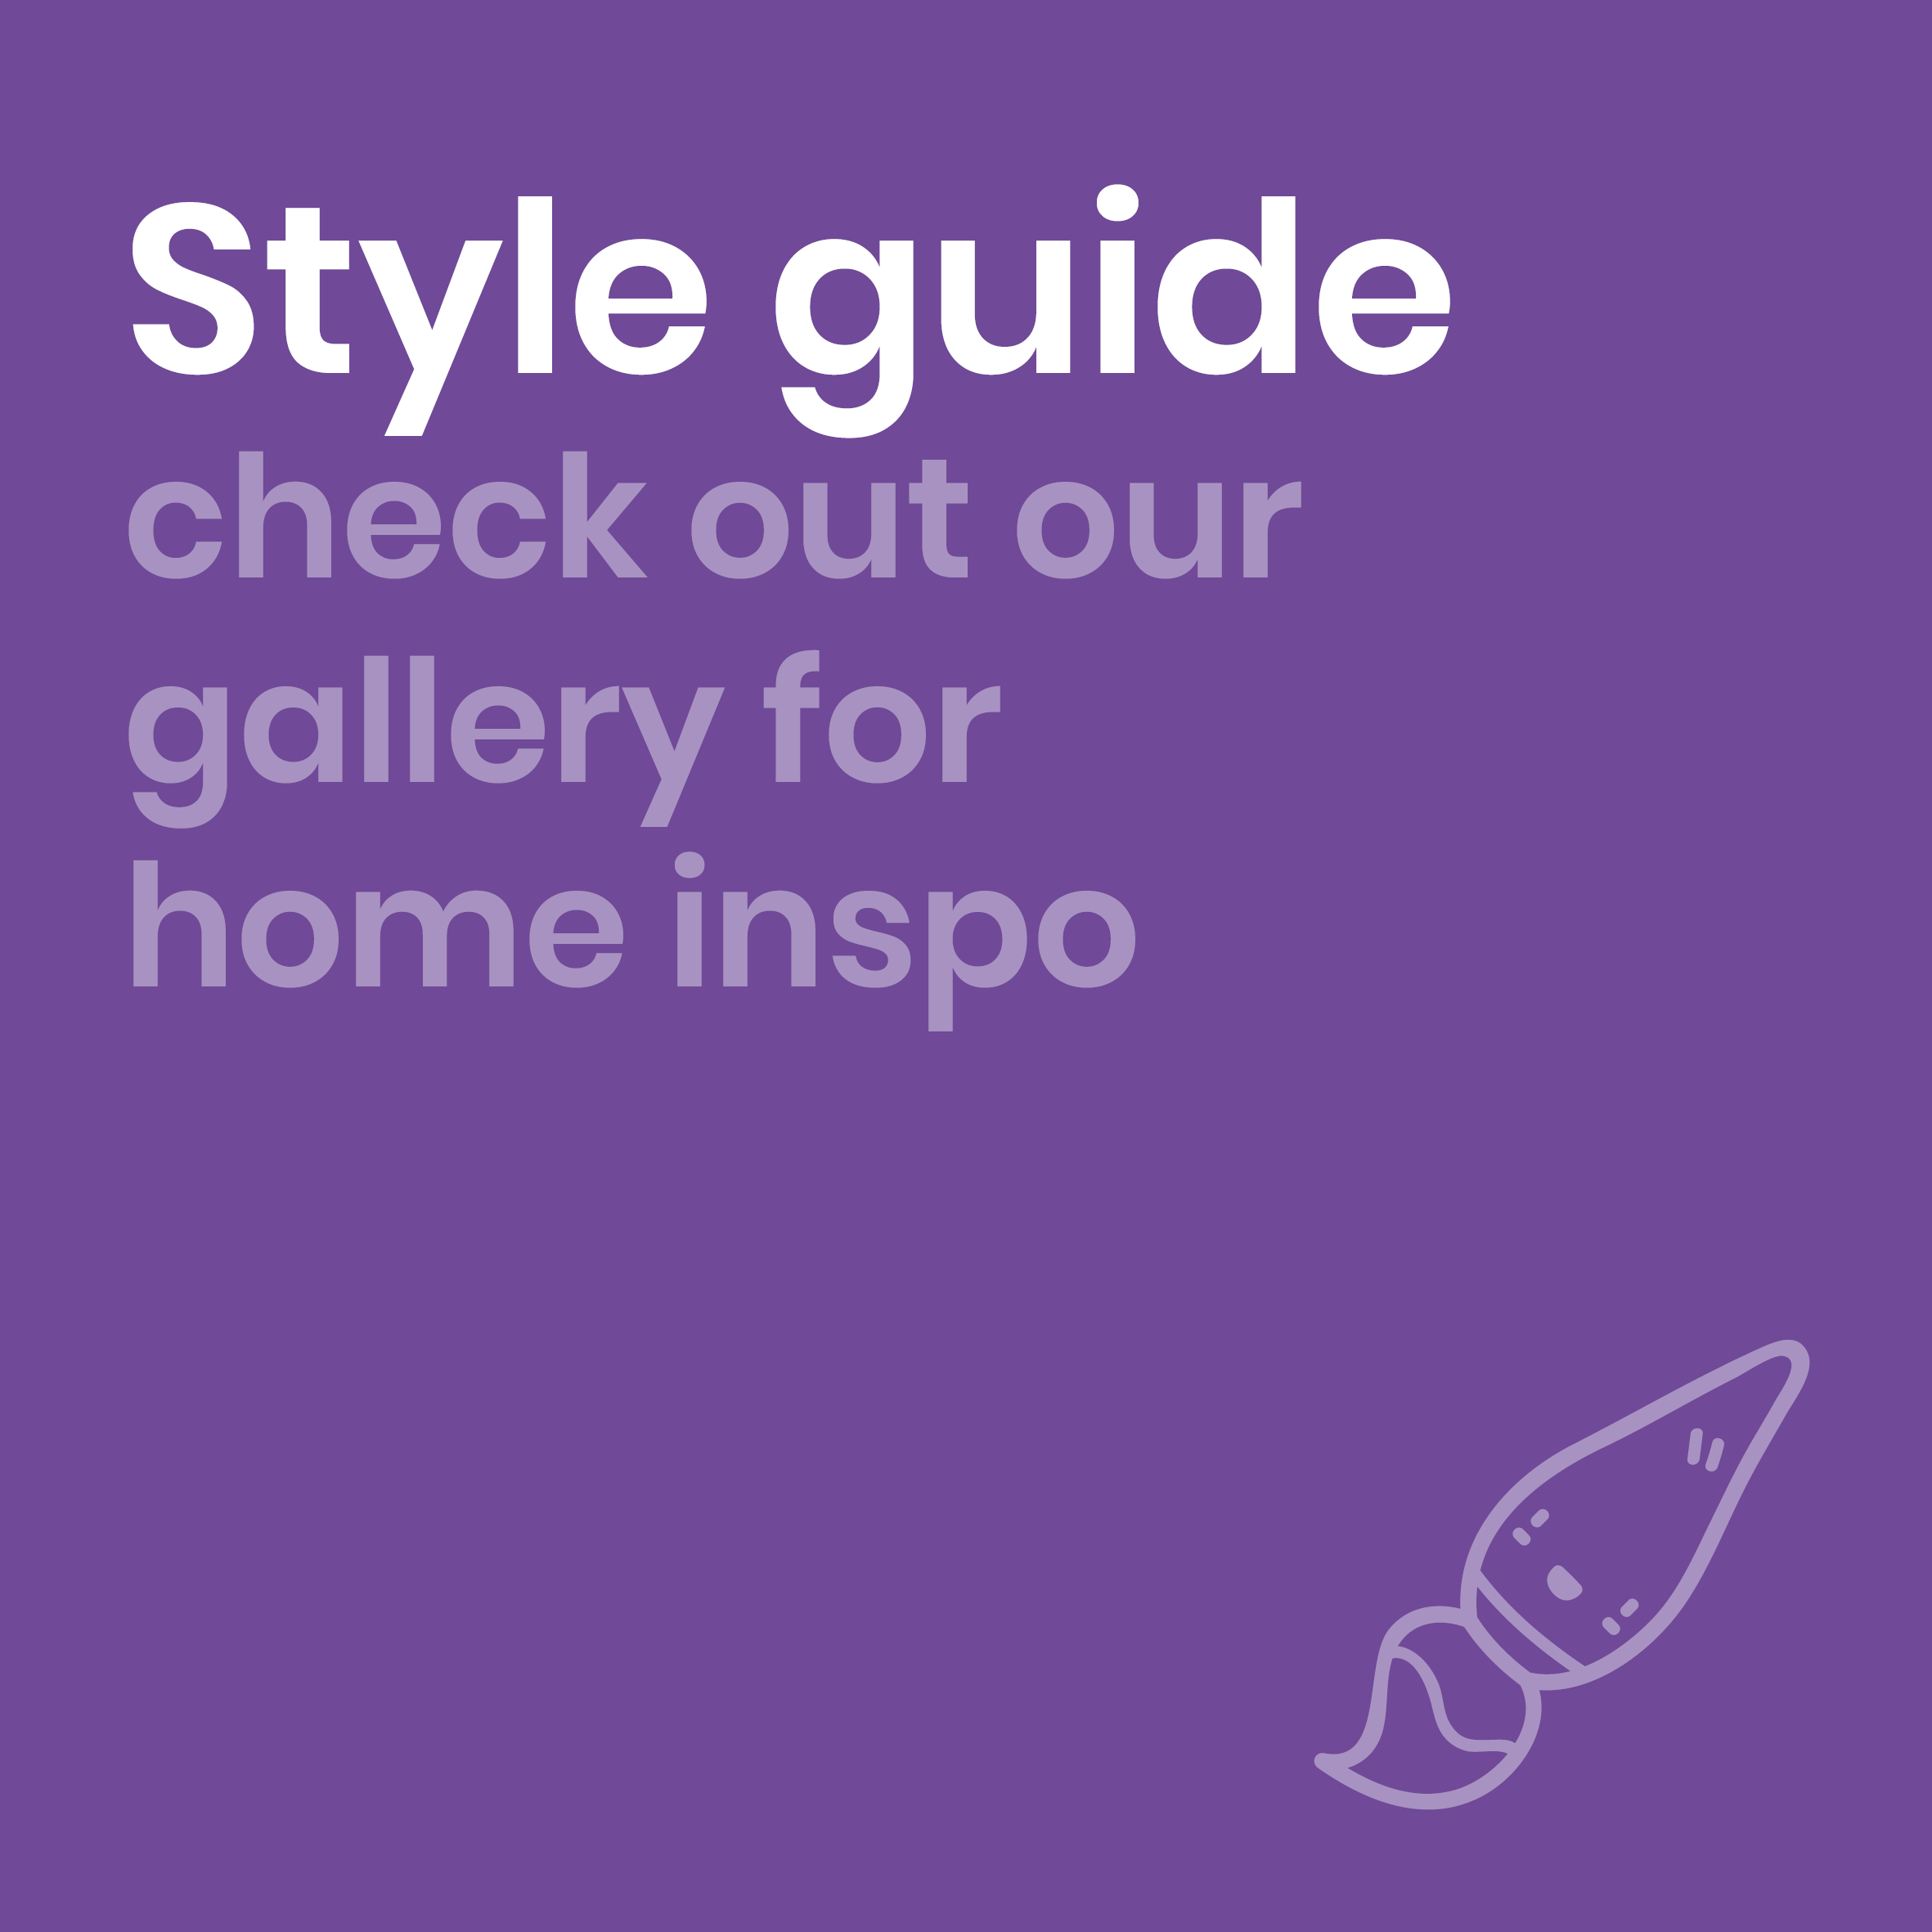 Branded style guide button by Move Homes